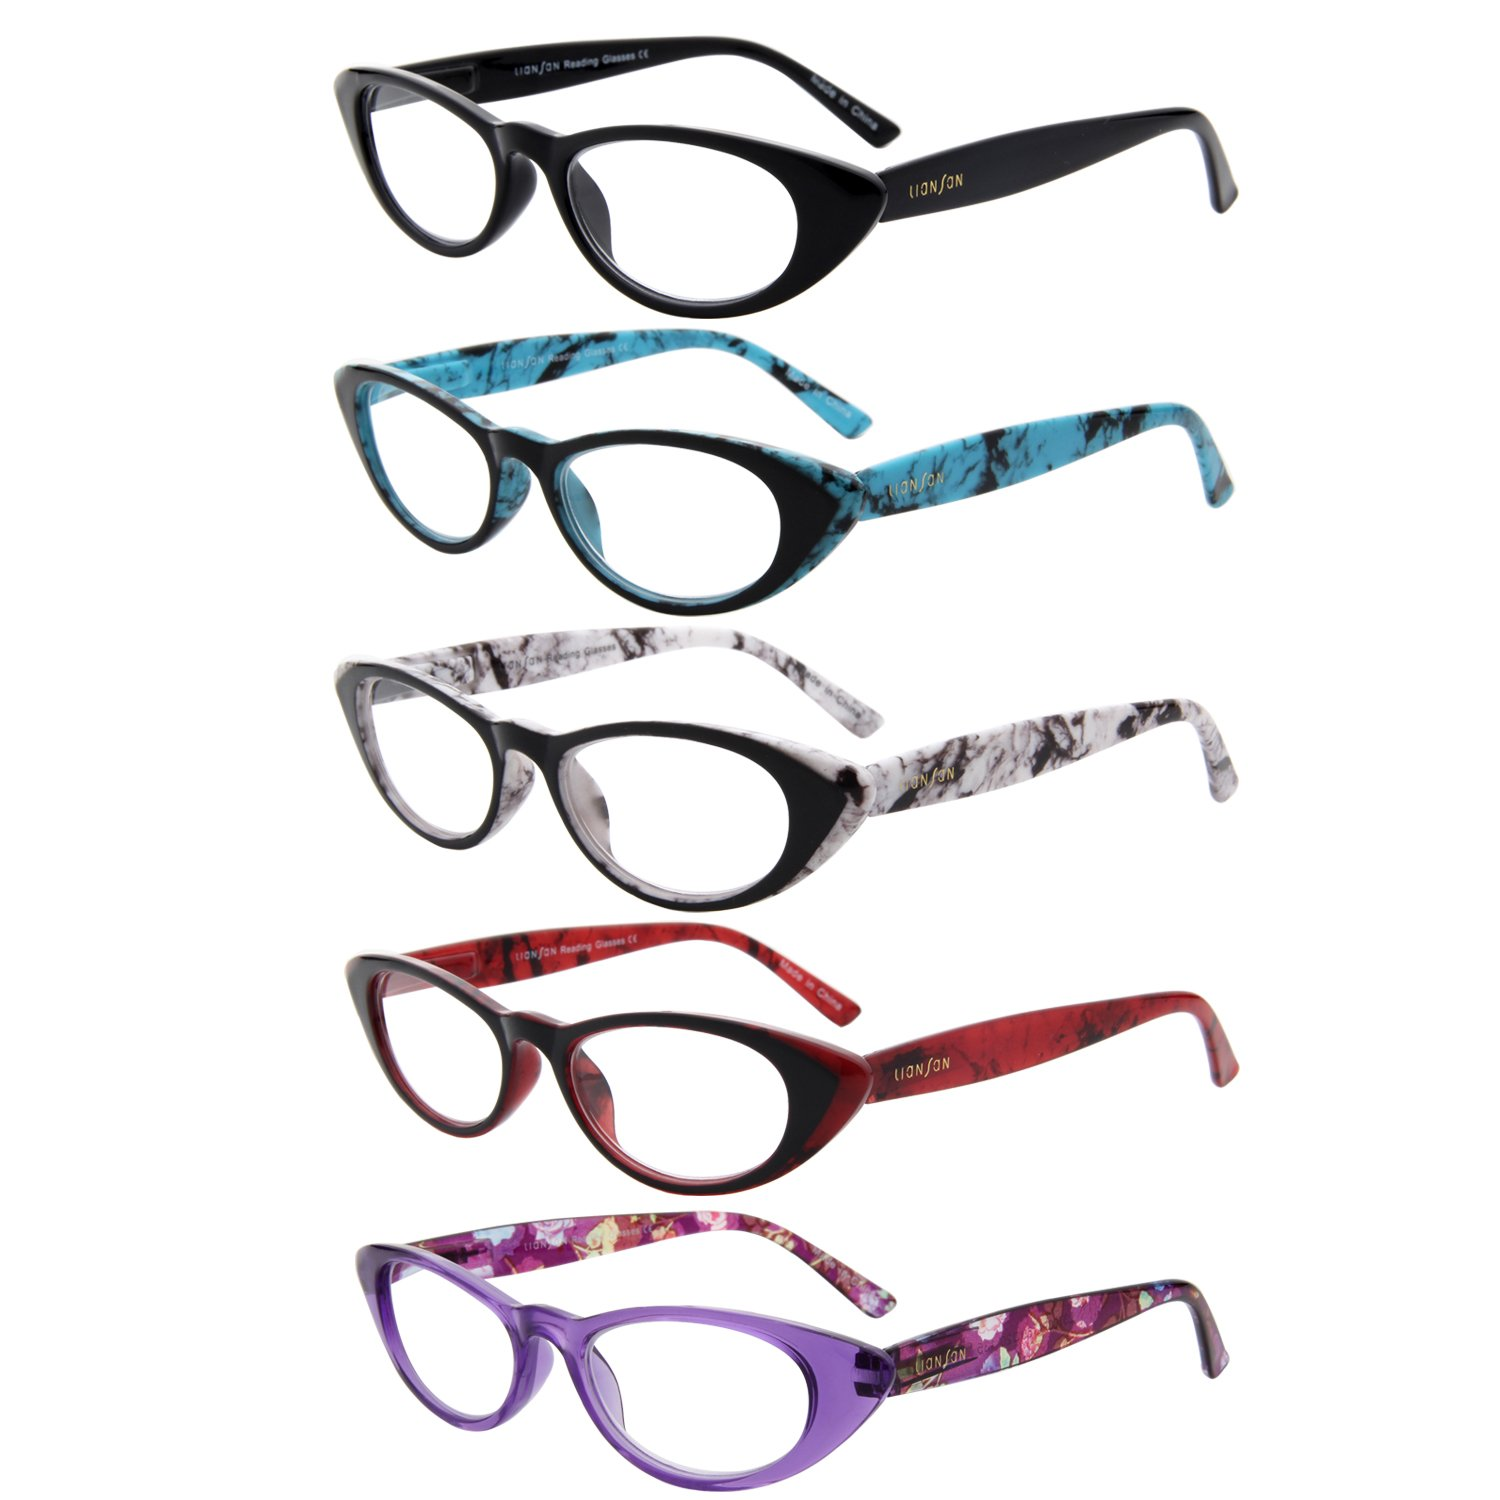 cfa614ff16fe LianSan glasses brand, originated from China, is a global eyewear brand  with striking sales growth.LianSan is focused on becoming a well-deserved  vision ...